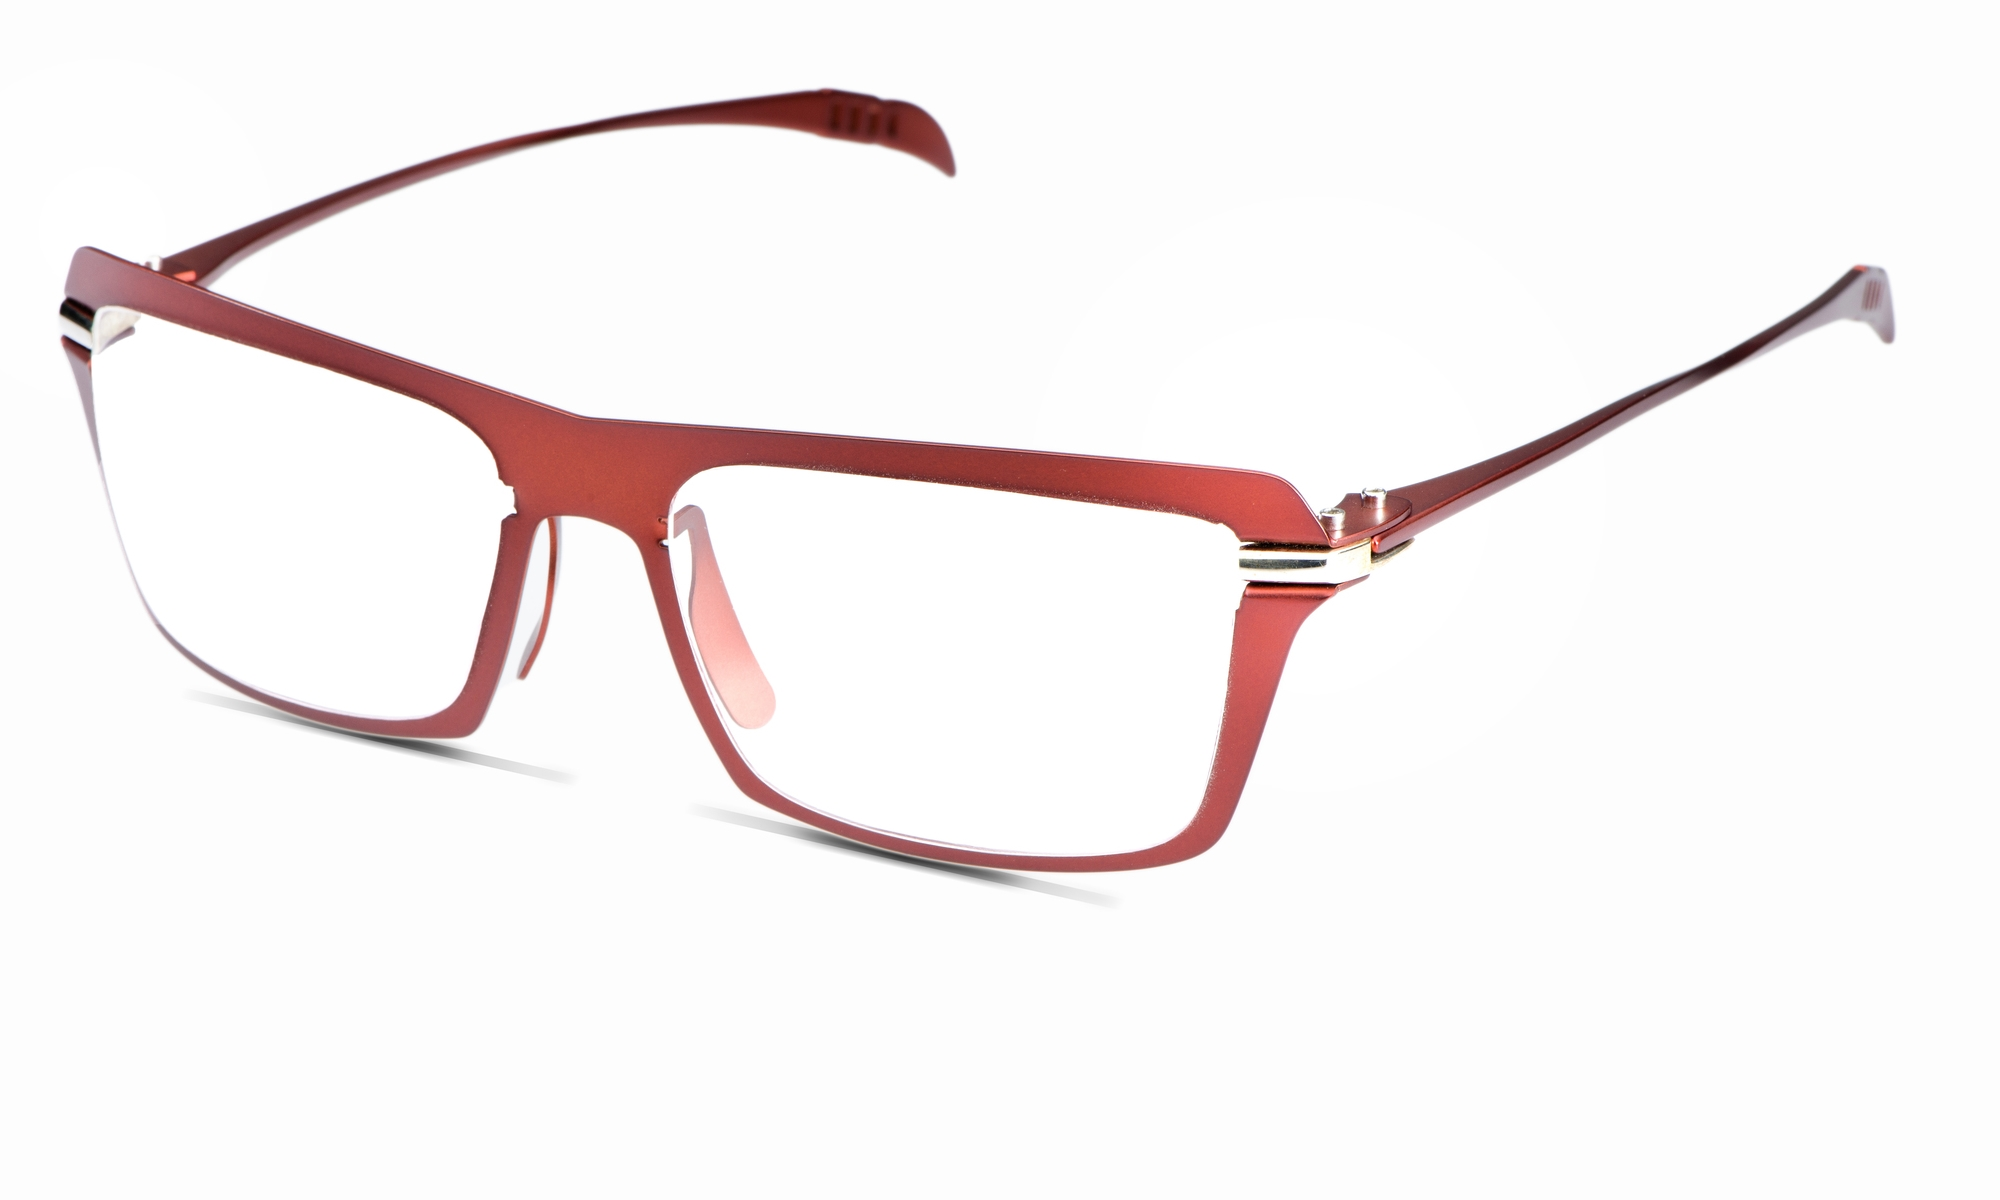 COGNAC | marmalade optic